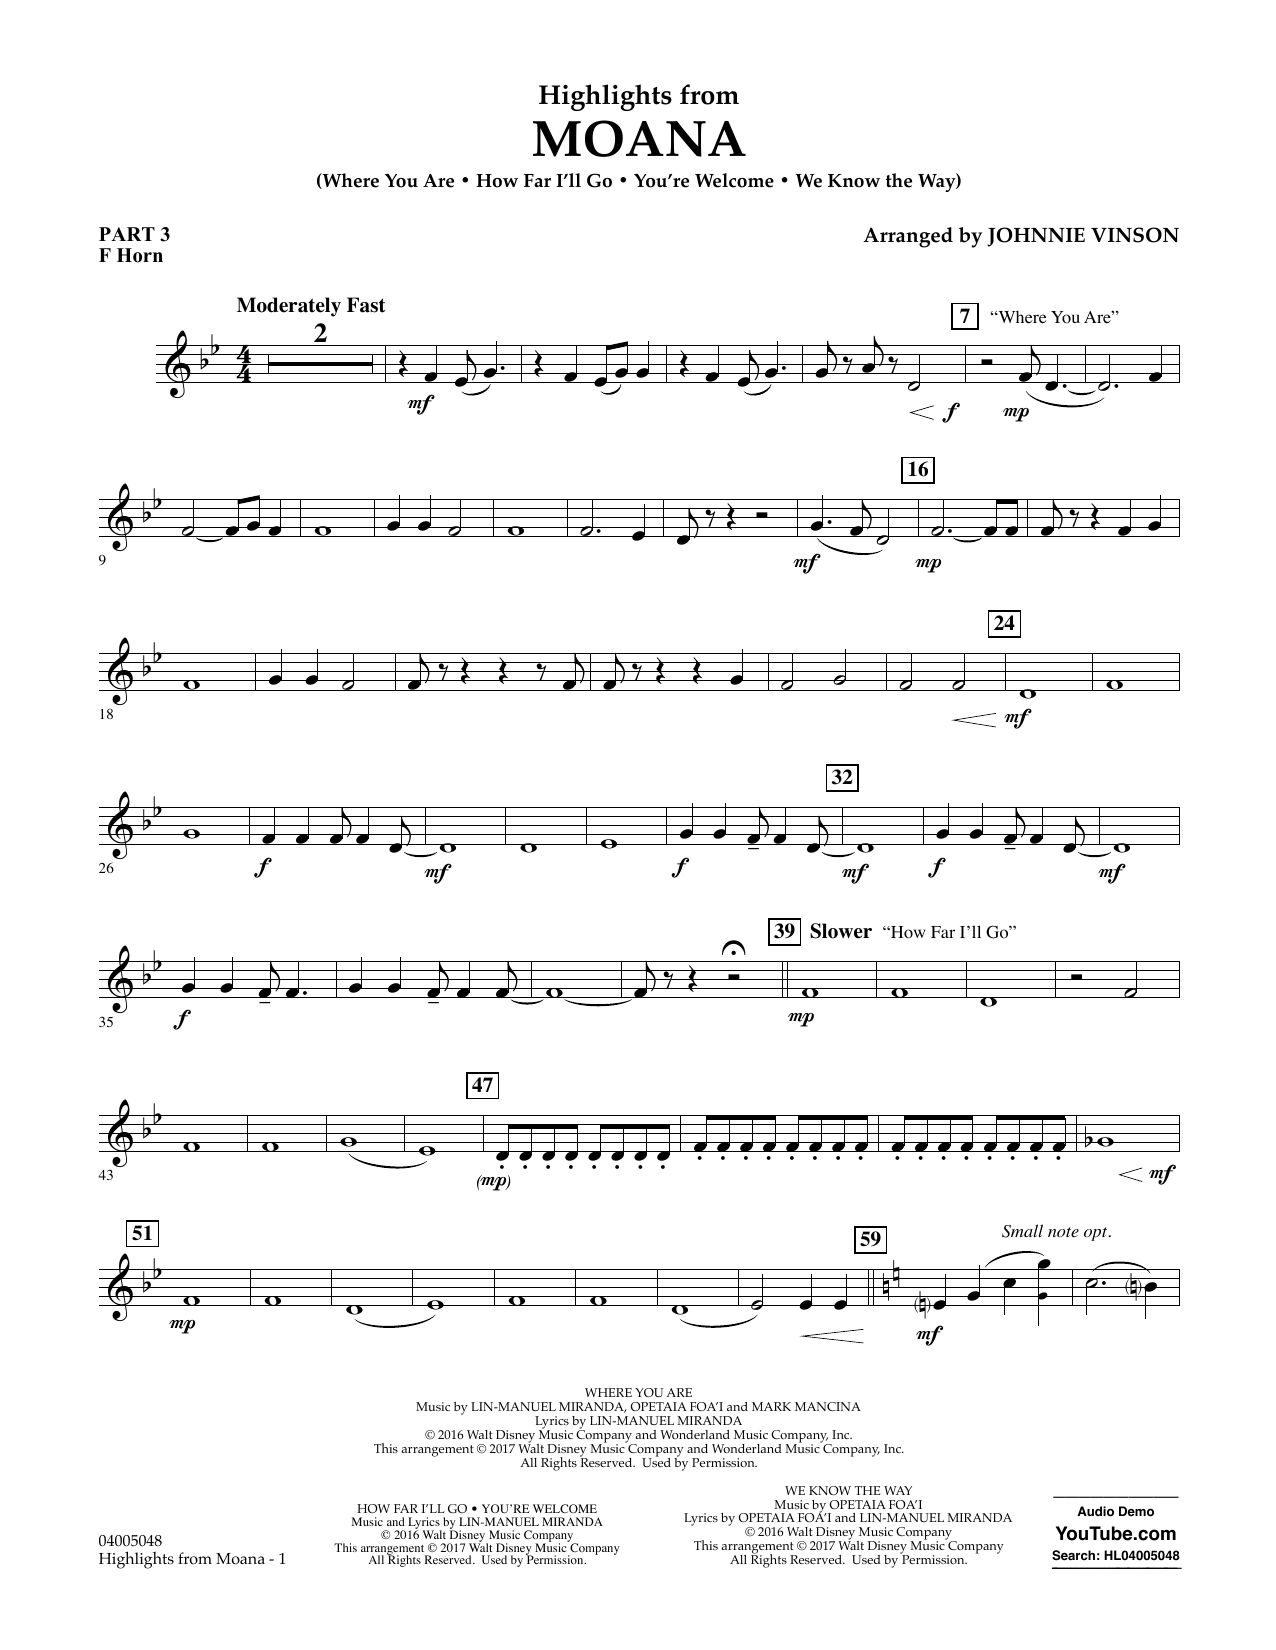 Highlights from Moana - Pt.3 - F Horn Sheet Music